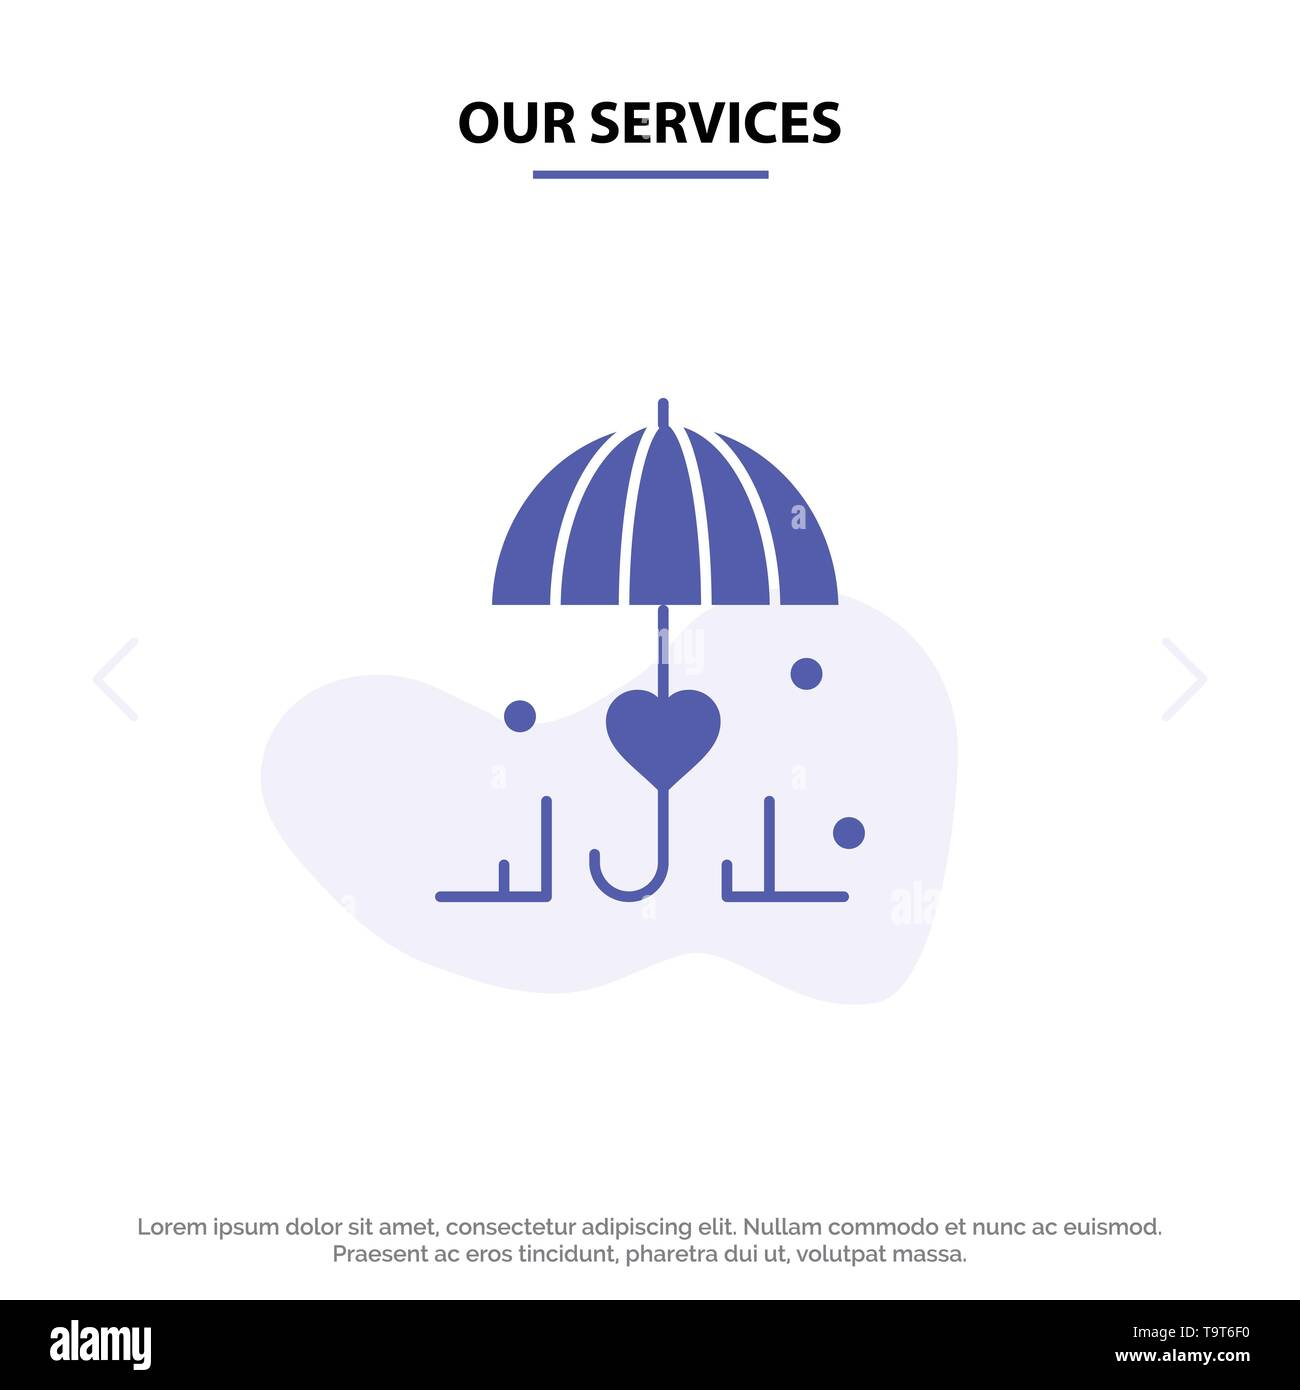 Our Services Insurance, Umbrella, Secure, Love Solid Glyph Icon Web card Template - Stock Image